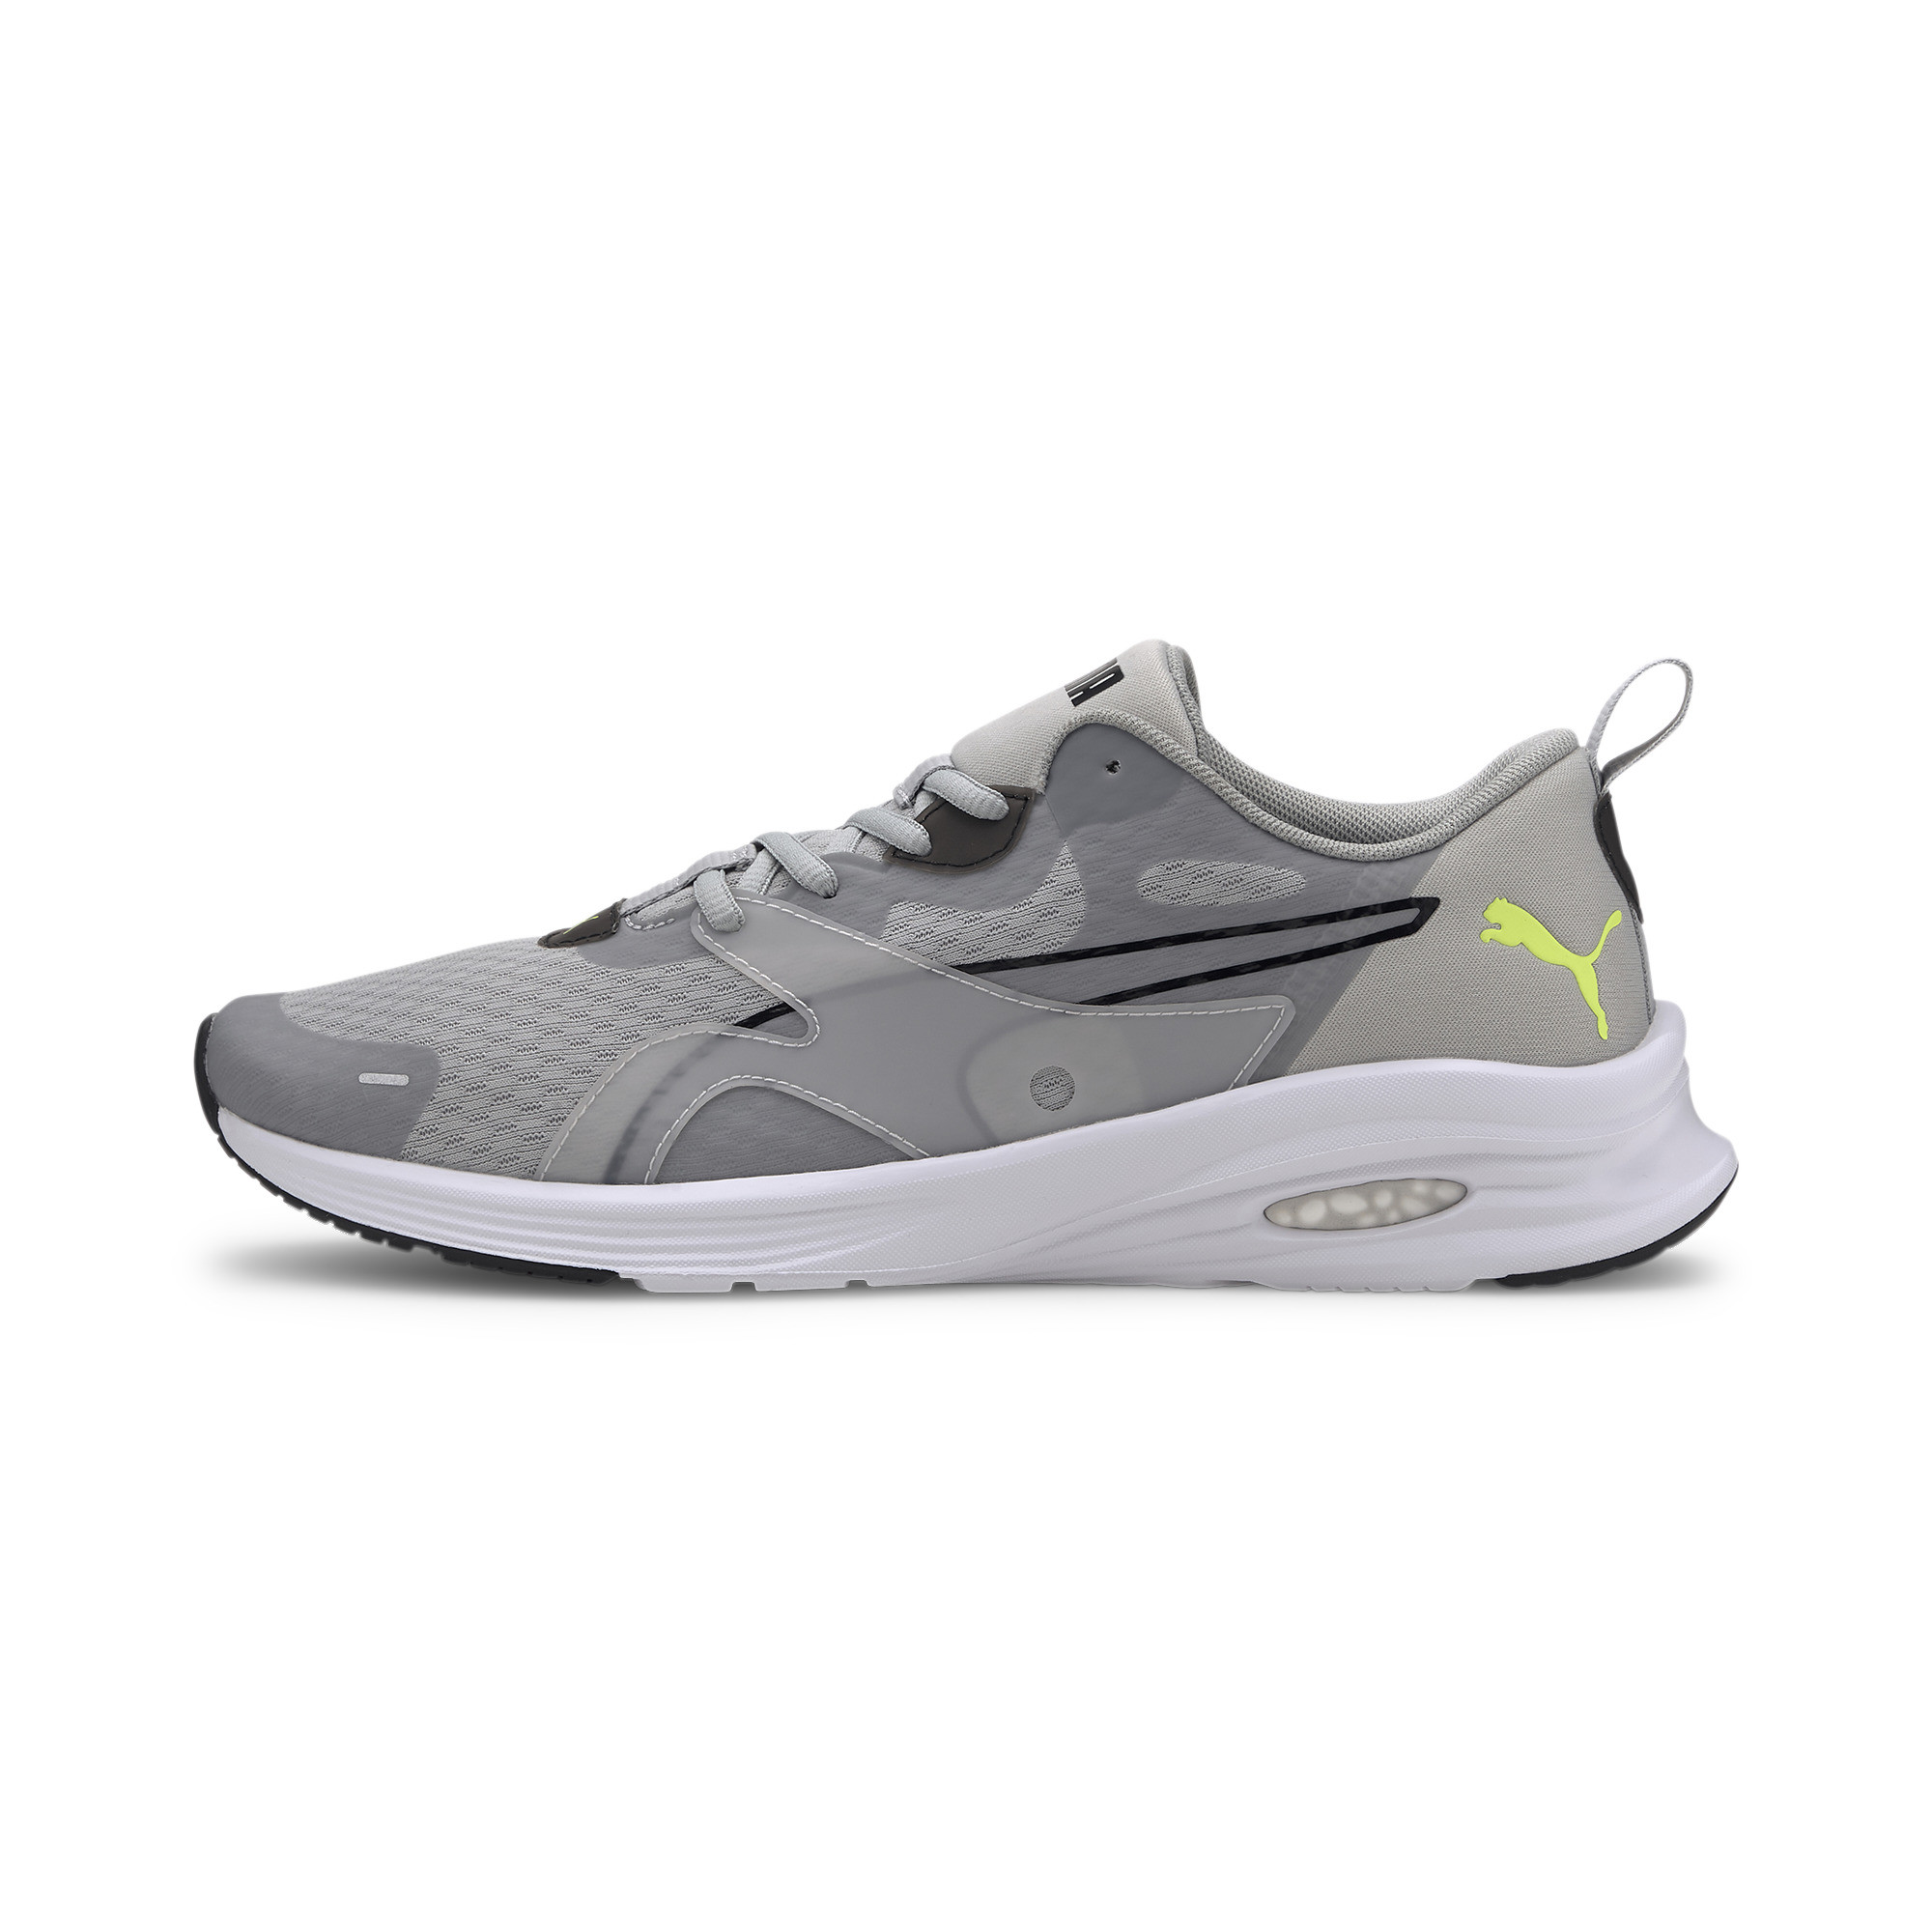 PUMA-Men-039-s-HYBRID-Fuego-Running-Shoes thumbnail 29